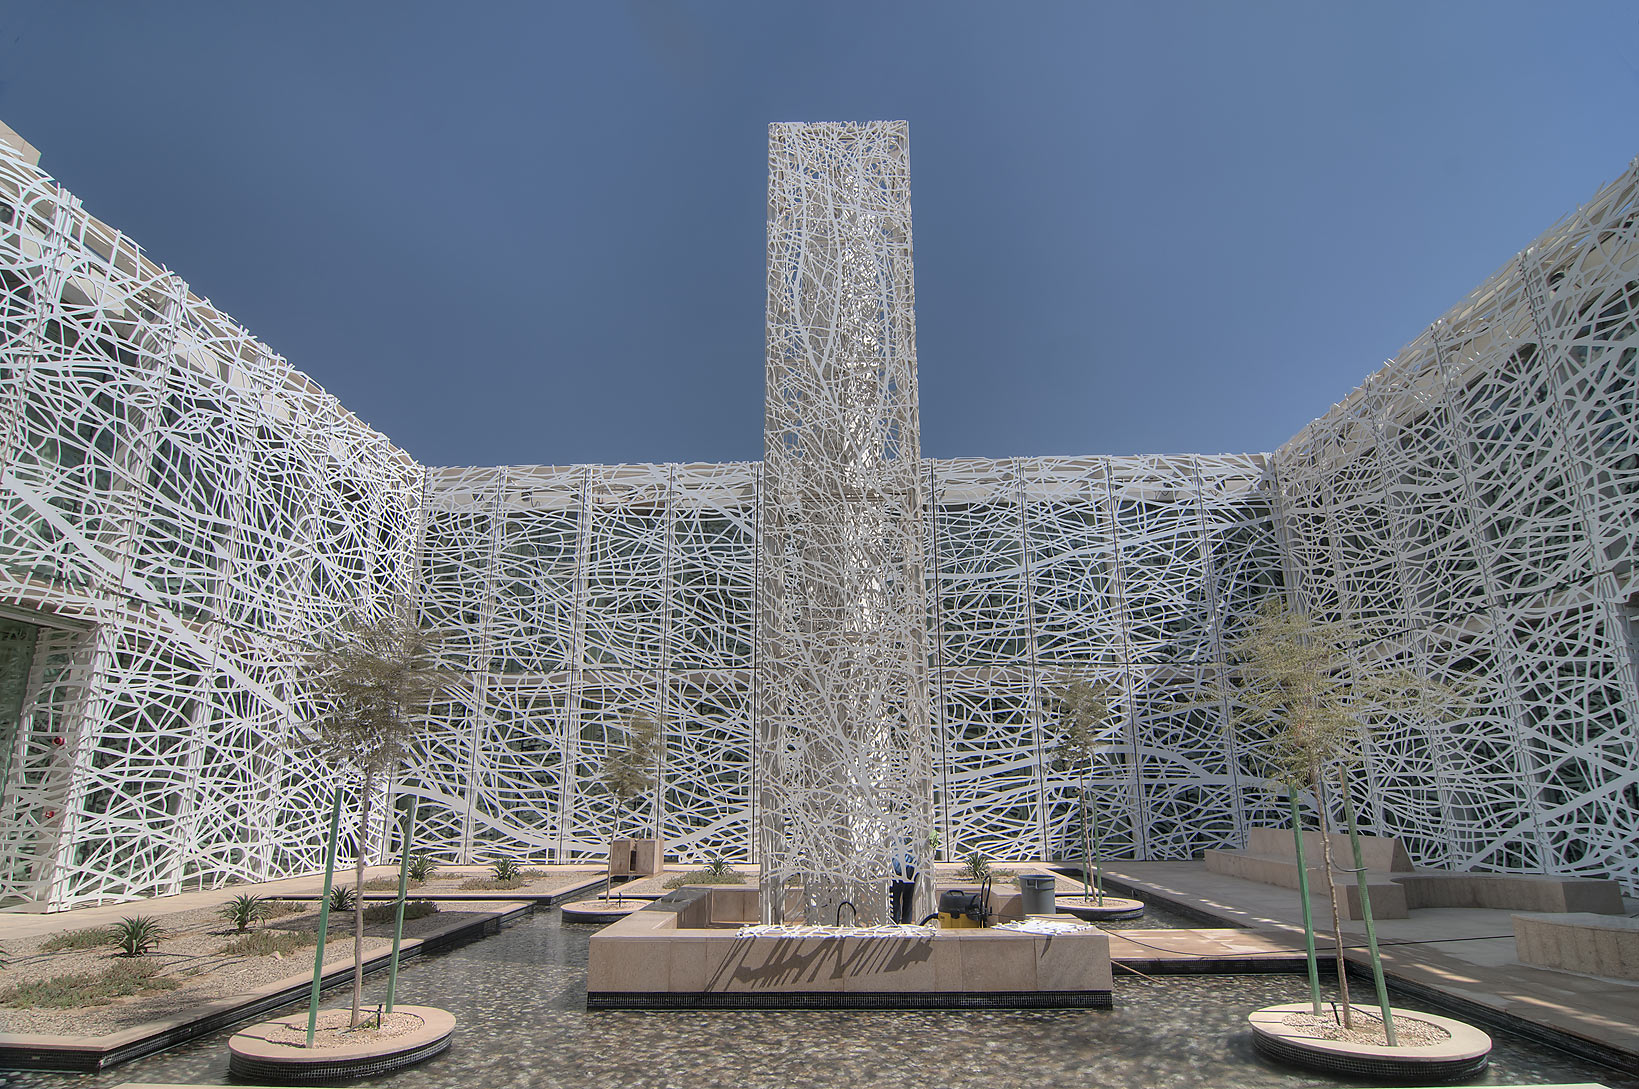 Sculpture Garden by Jan Hendrix in a courtyard of...in Education City campus. Doha, Qatar